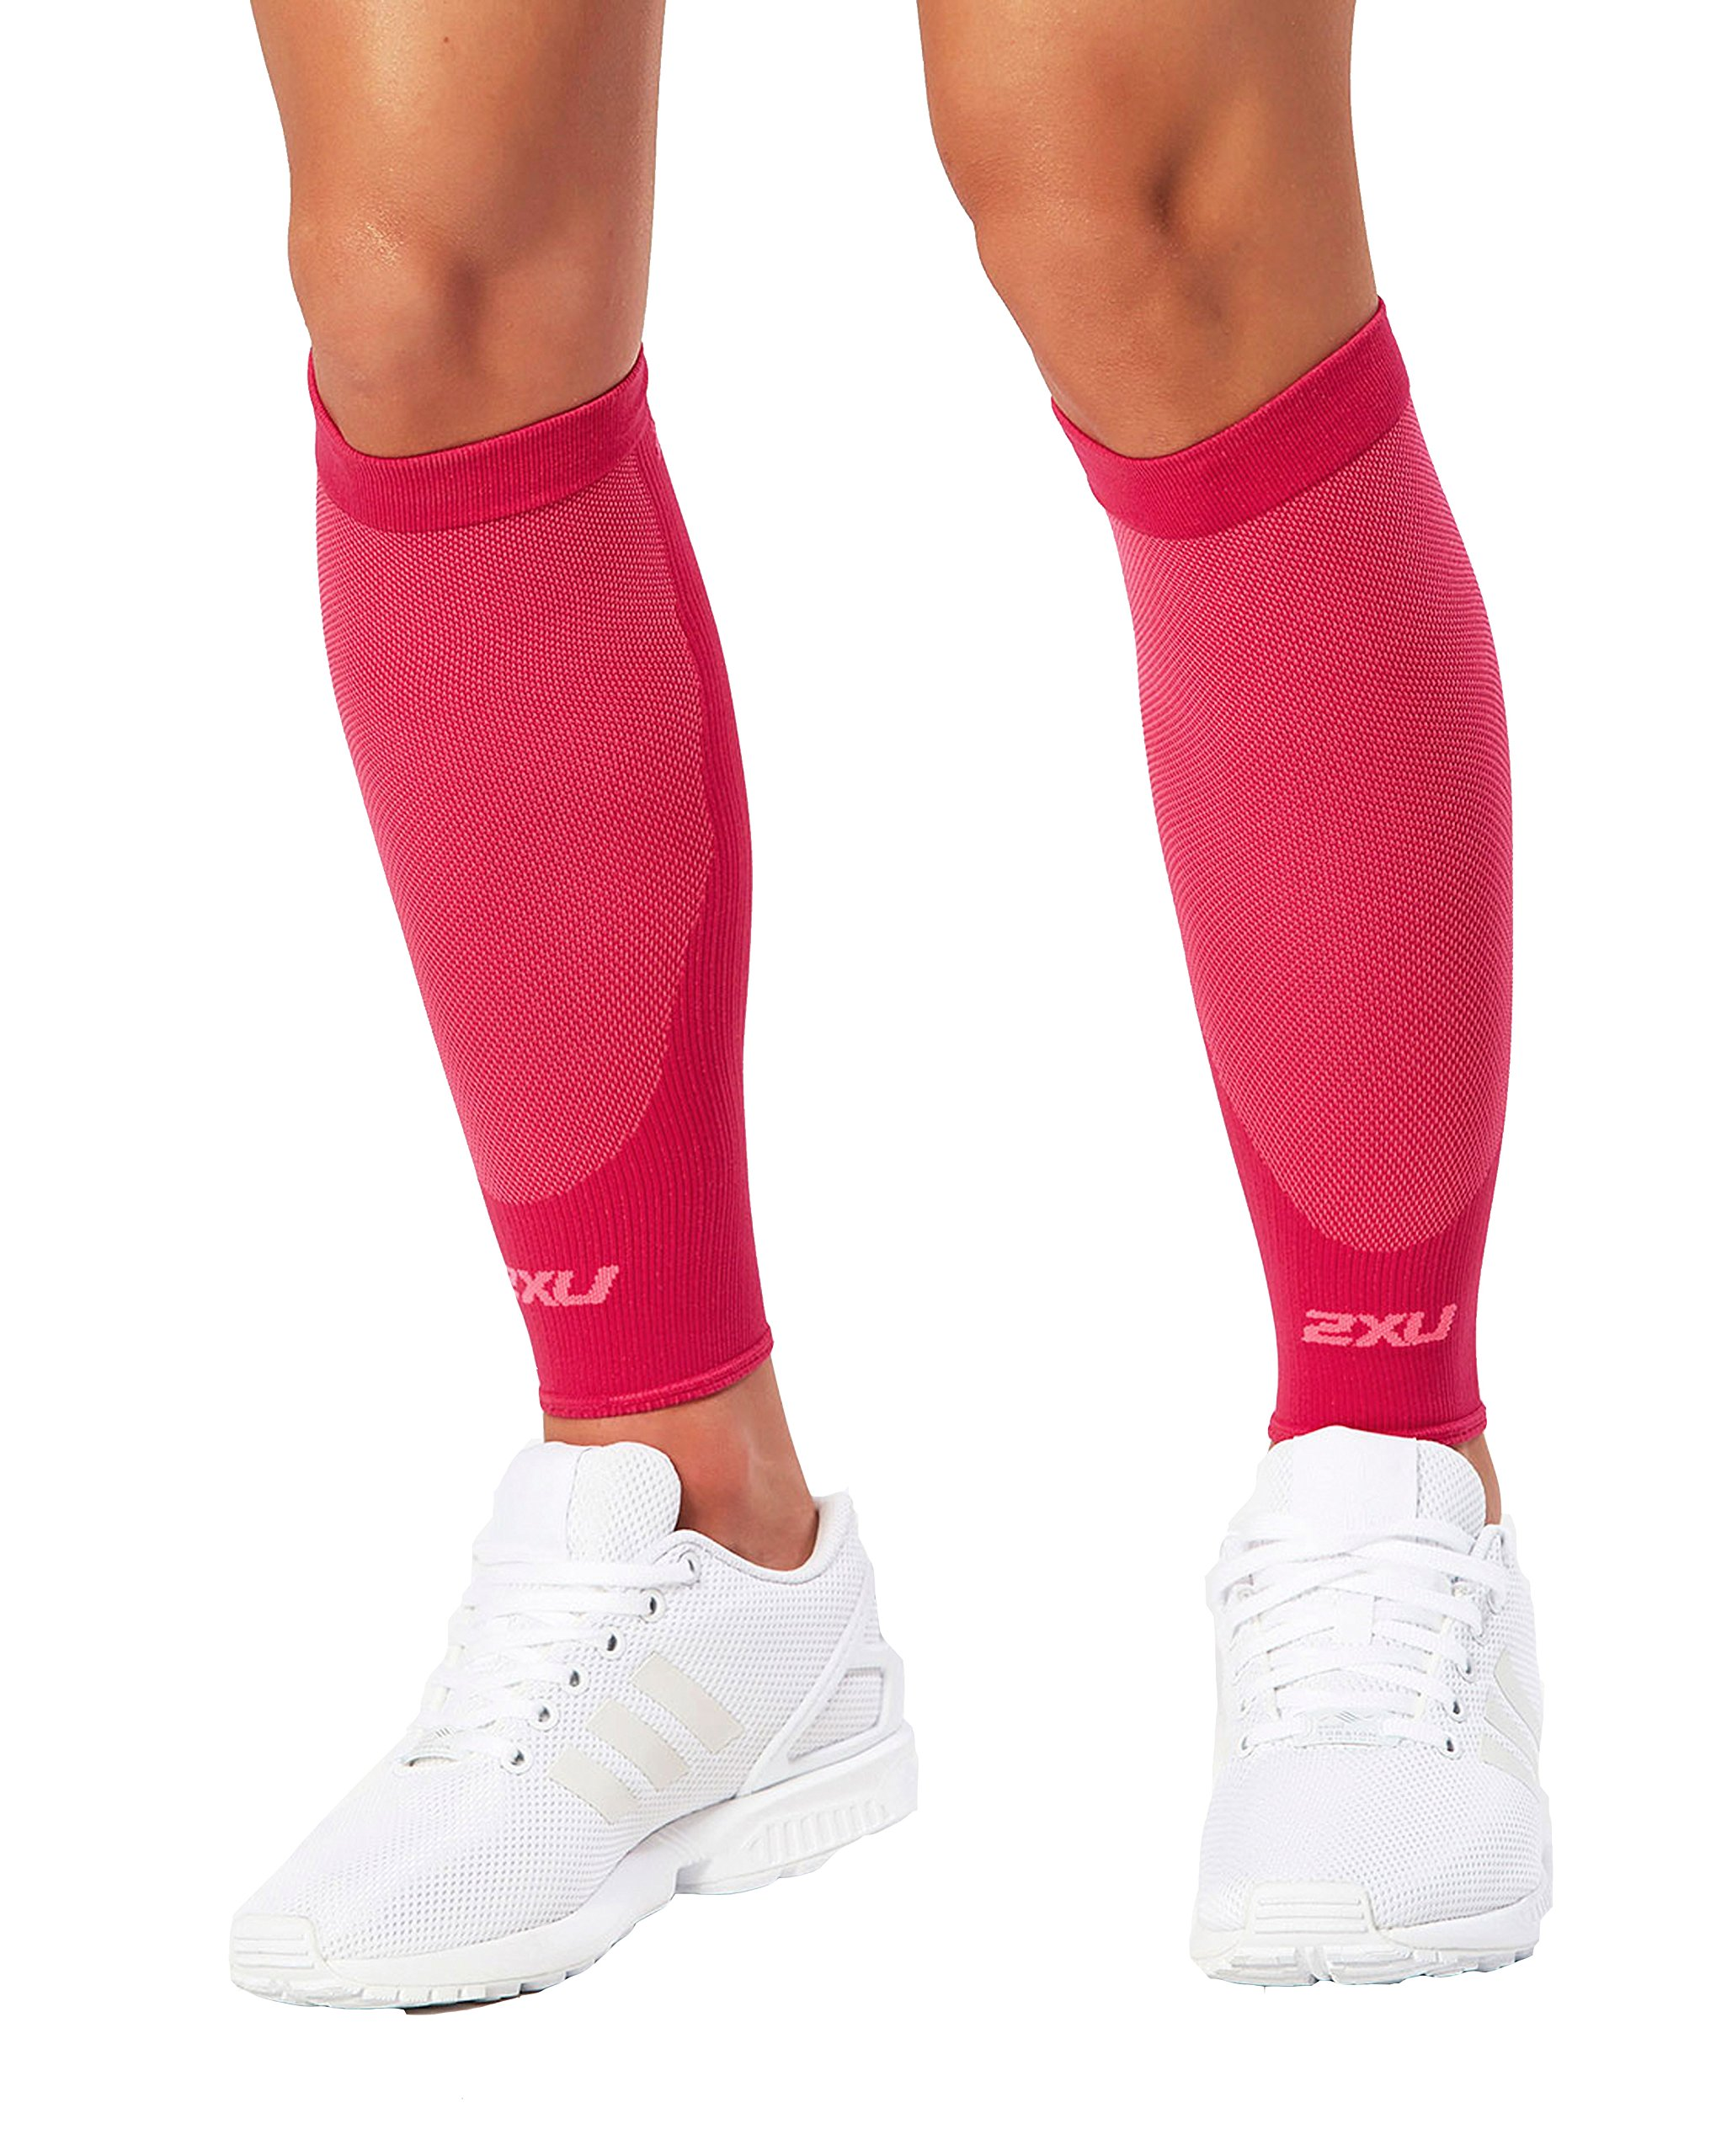 2XU Compression performance Sleeves, Hot Pink/Hot Pink, X-Small